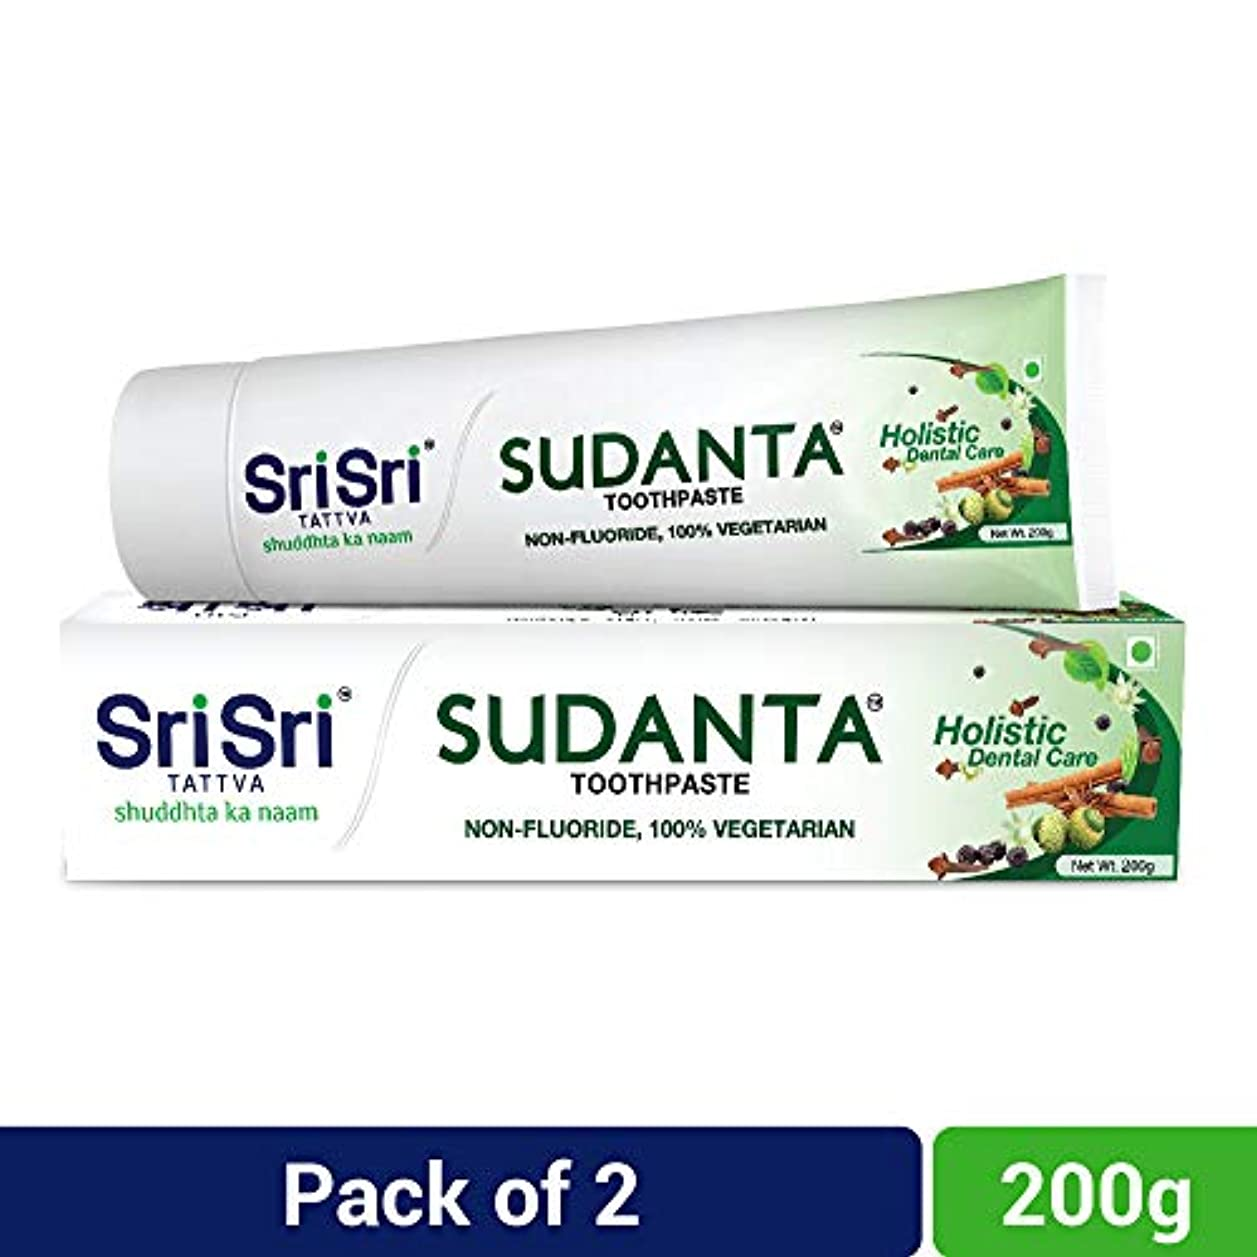 活性化するインゲン言語Sri Sri Tattva Sudanta Toothpaste (200 g) Pack of 2